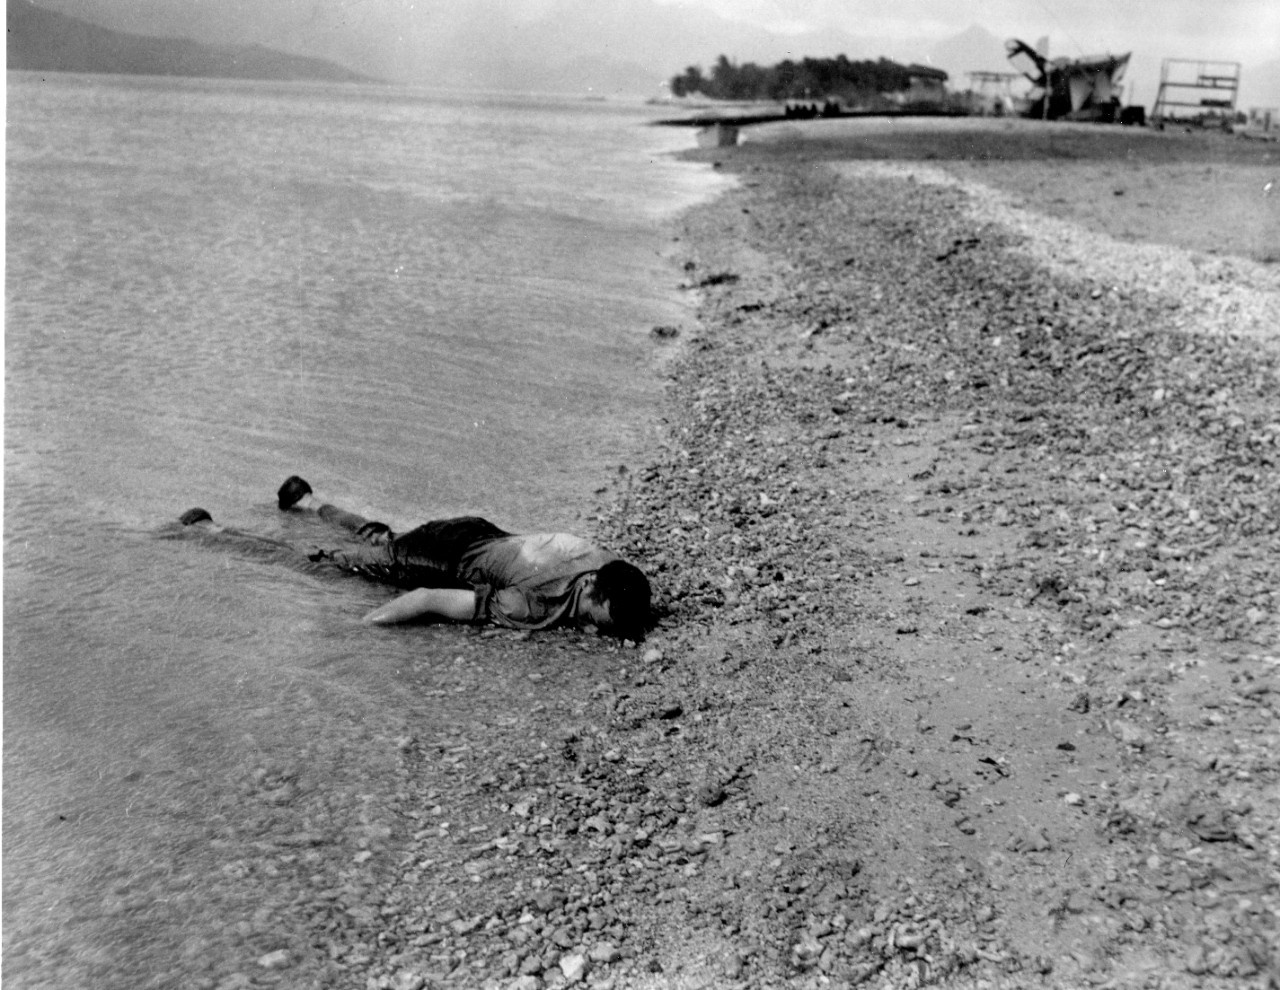 Sailor lies face down, killed during the air attack at the Naval Air Station in Kaneohe Bay.